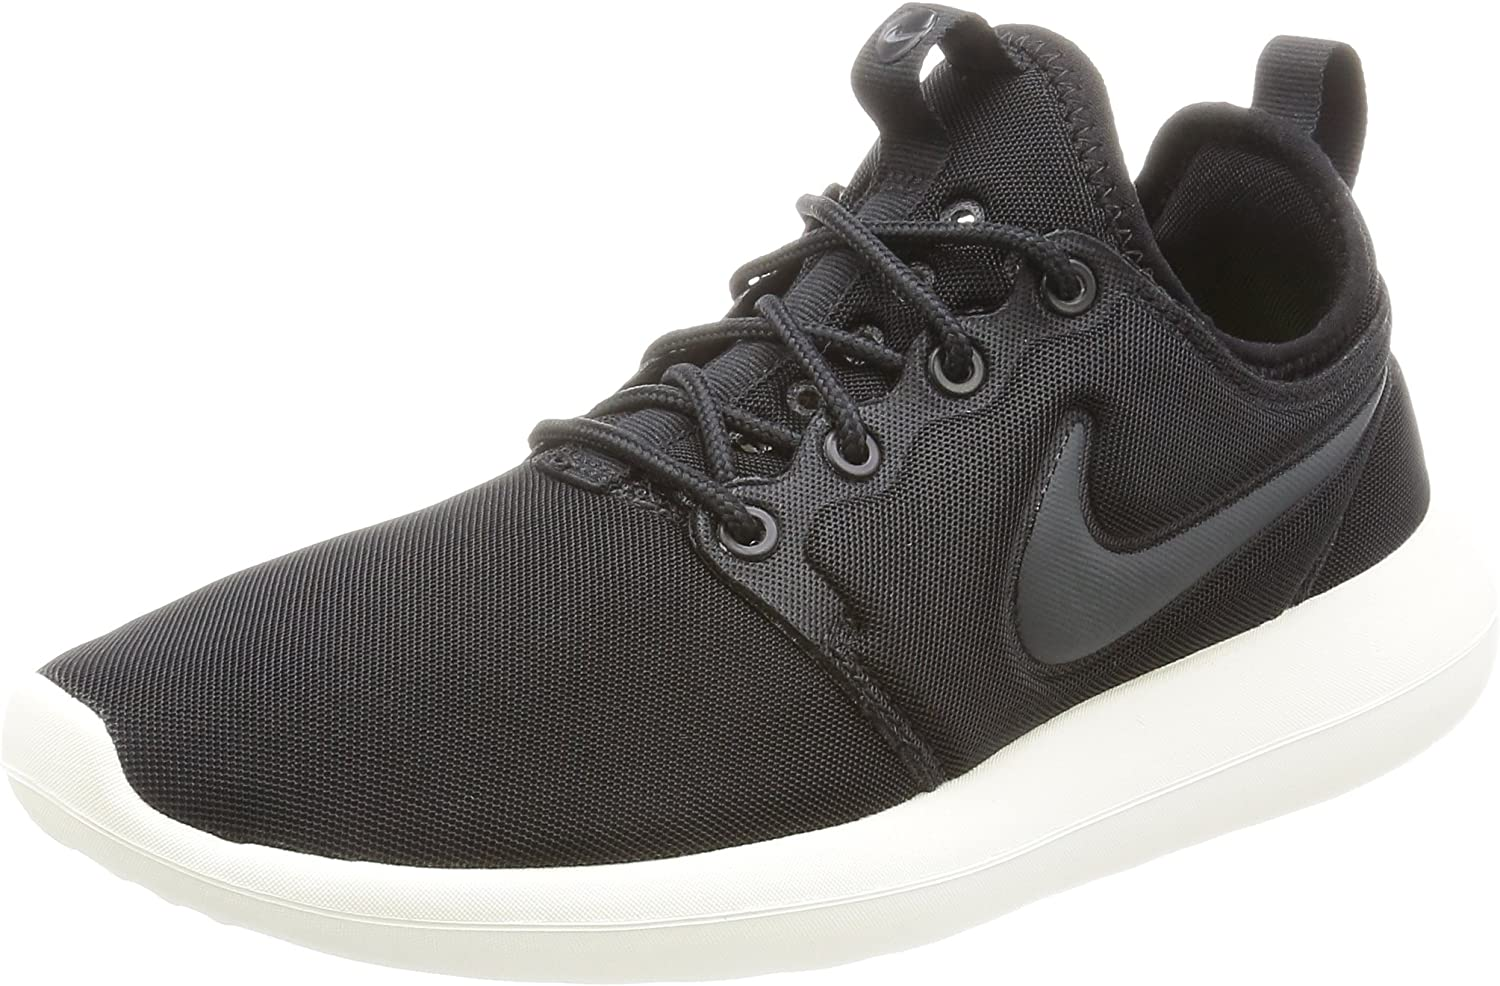 Nike Adults' W Roshe Two Running shoes